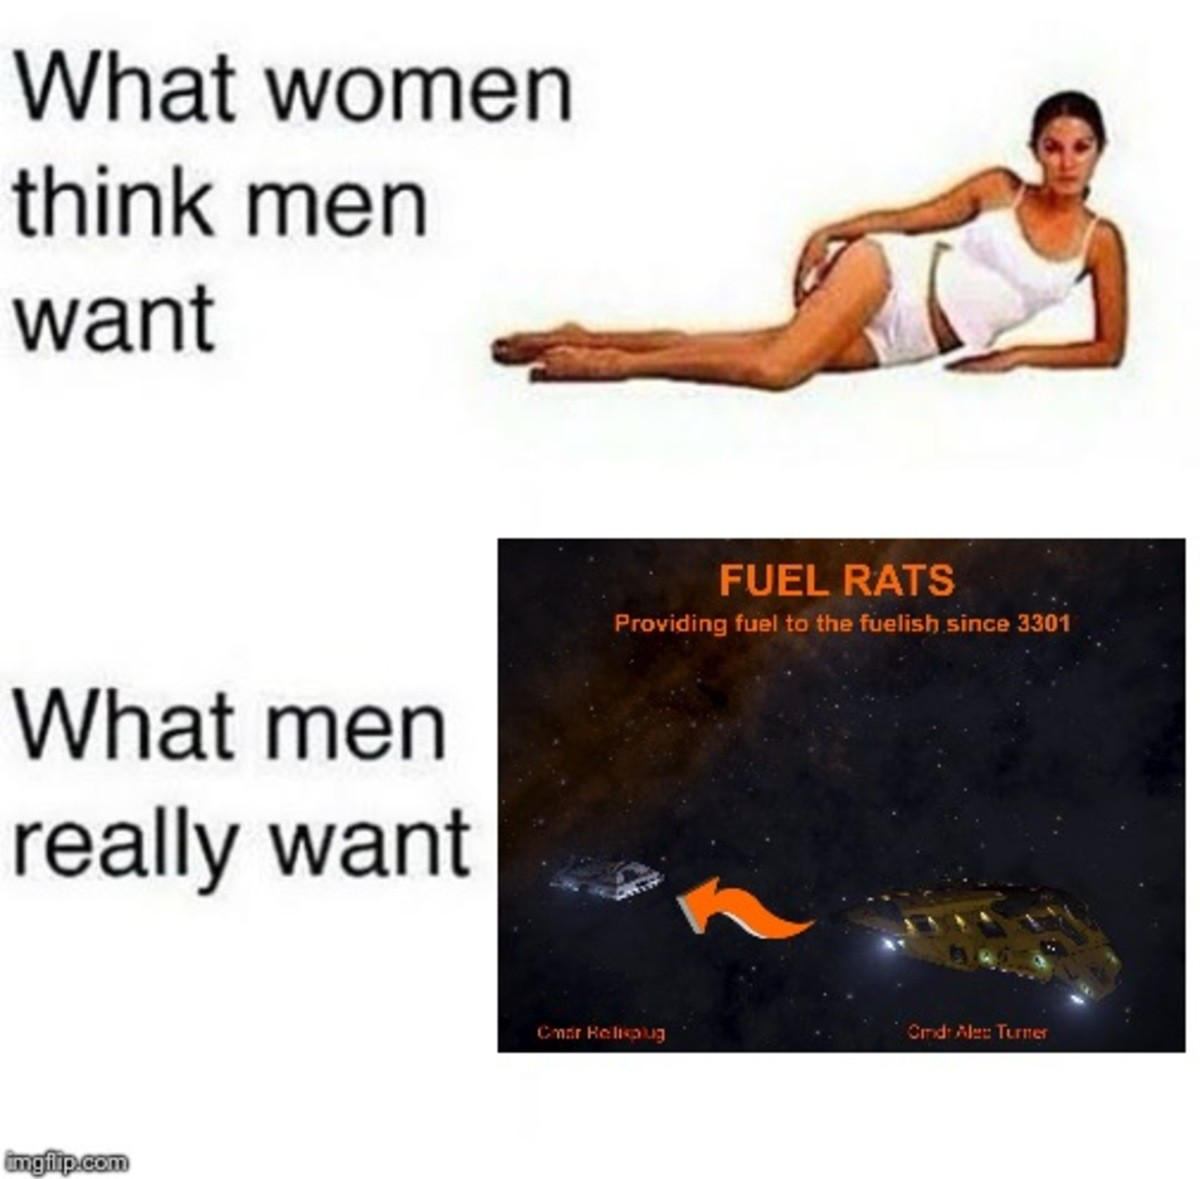 Fuel rats. .. Elite dangerous is a good game, check it outComment edited at .